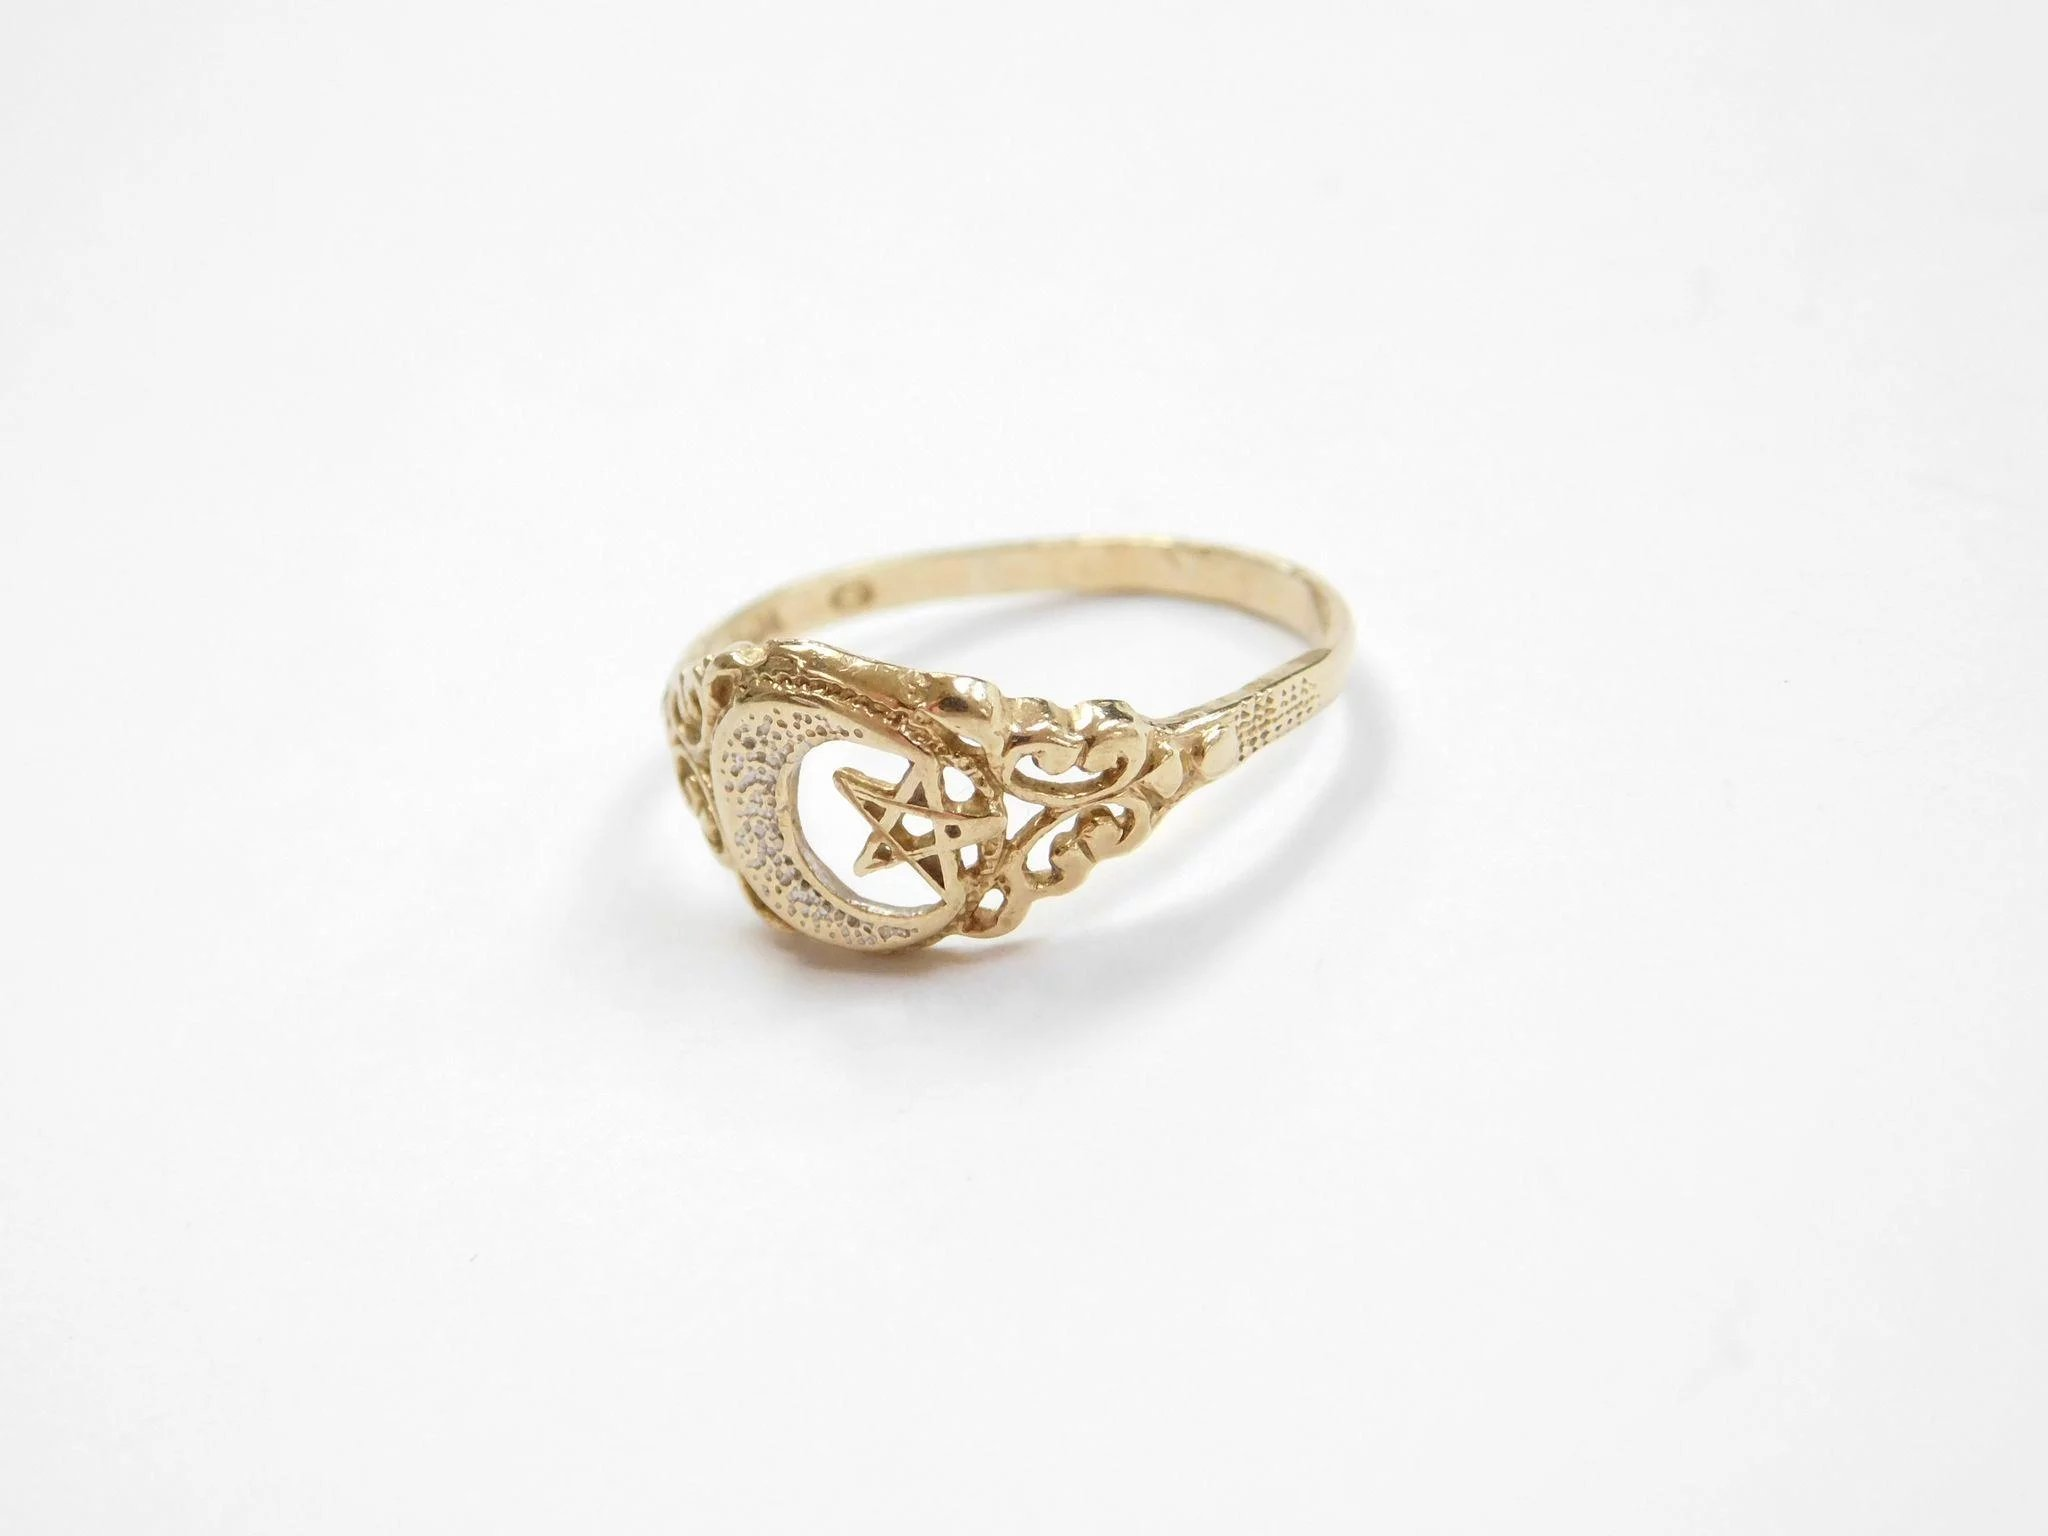 Vintage 10k Gold Crescent Moon And Star Ring Two Tone